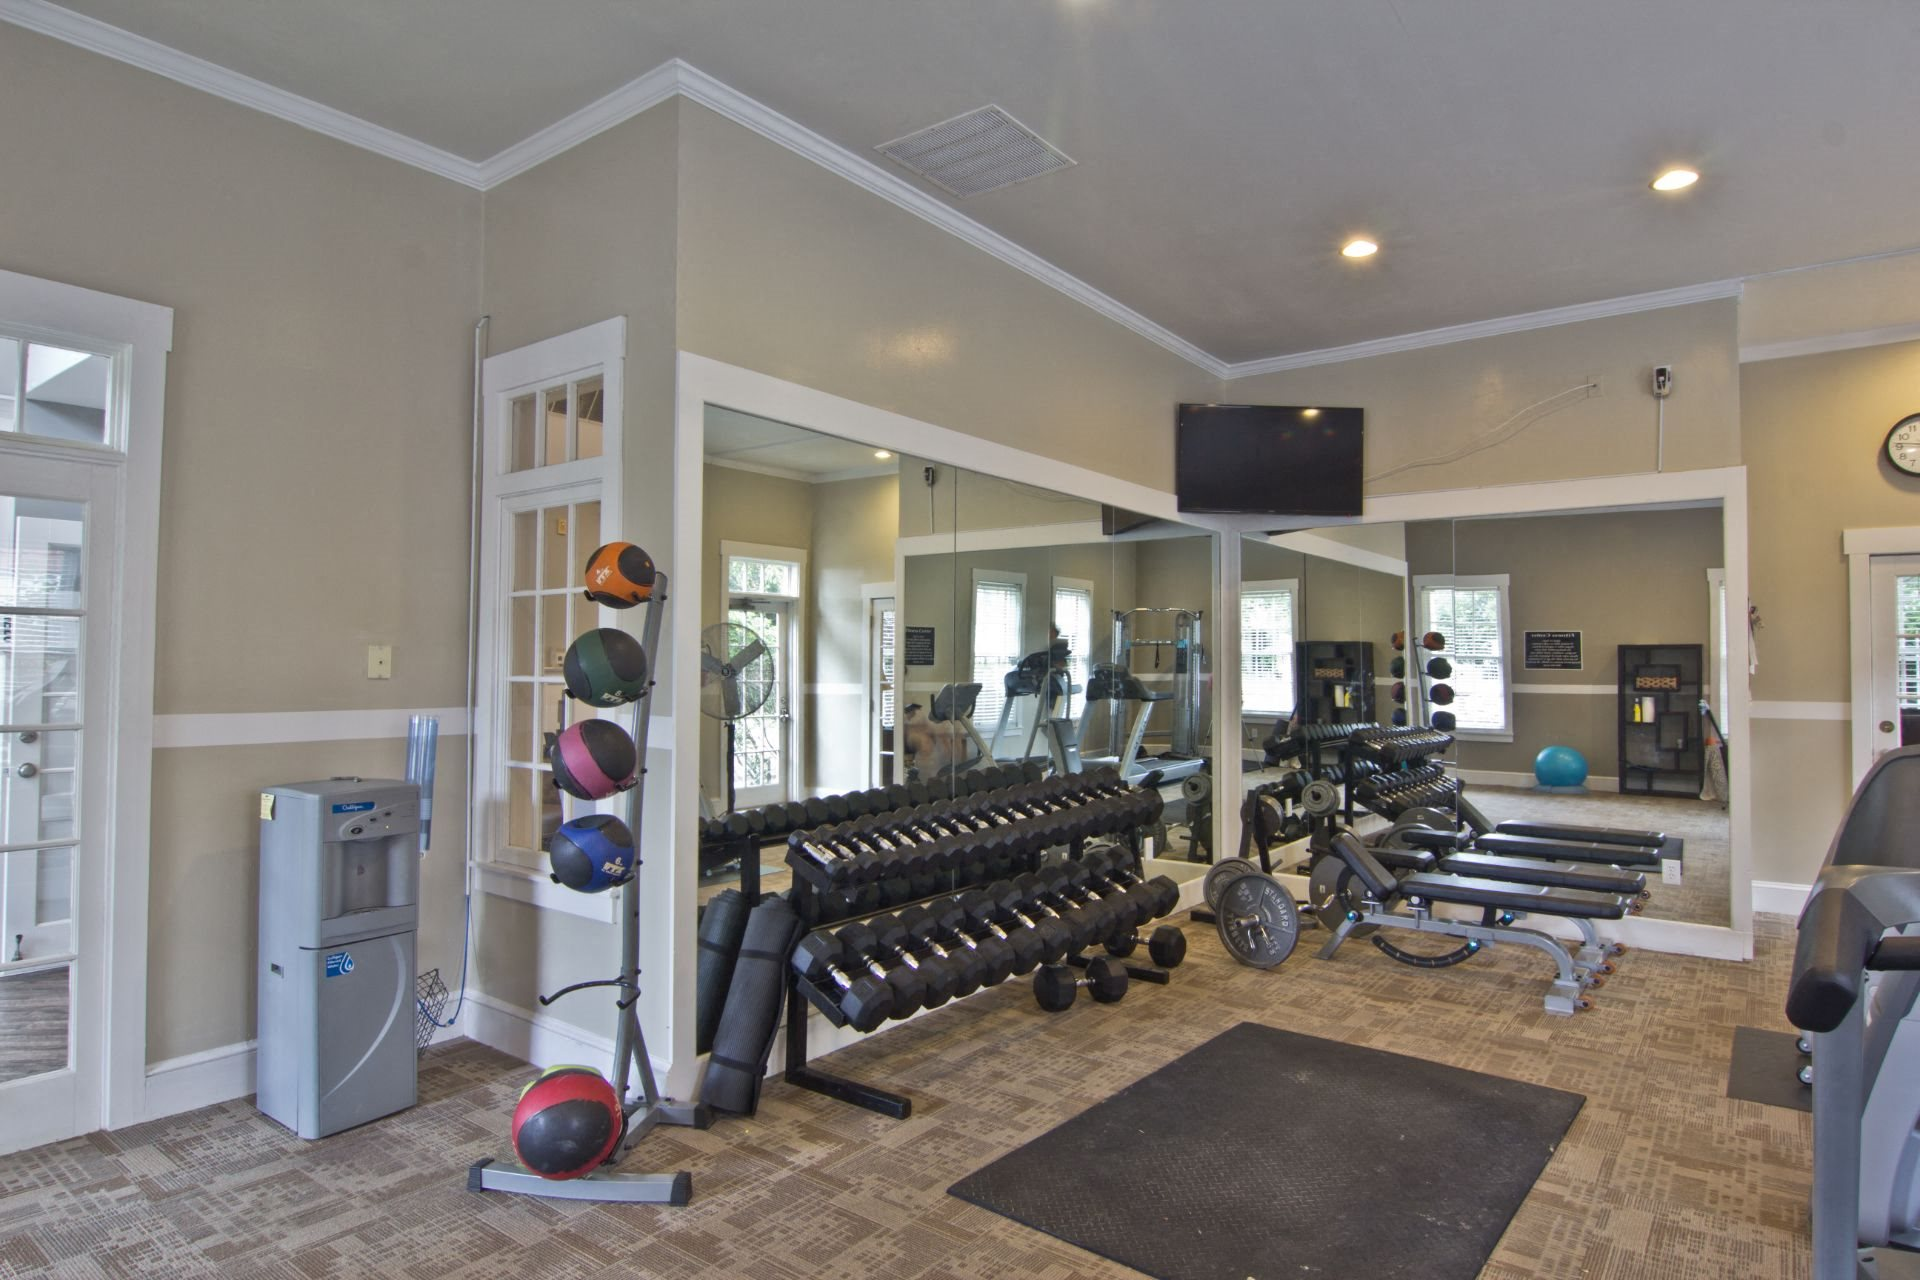 Fitness Center The Woods at Polaris Parkway 1 and 2 Bedroom  Garden Apartments and 3 Bedroom Townhomes